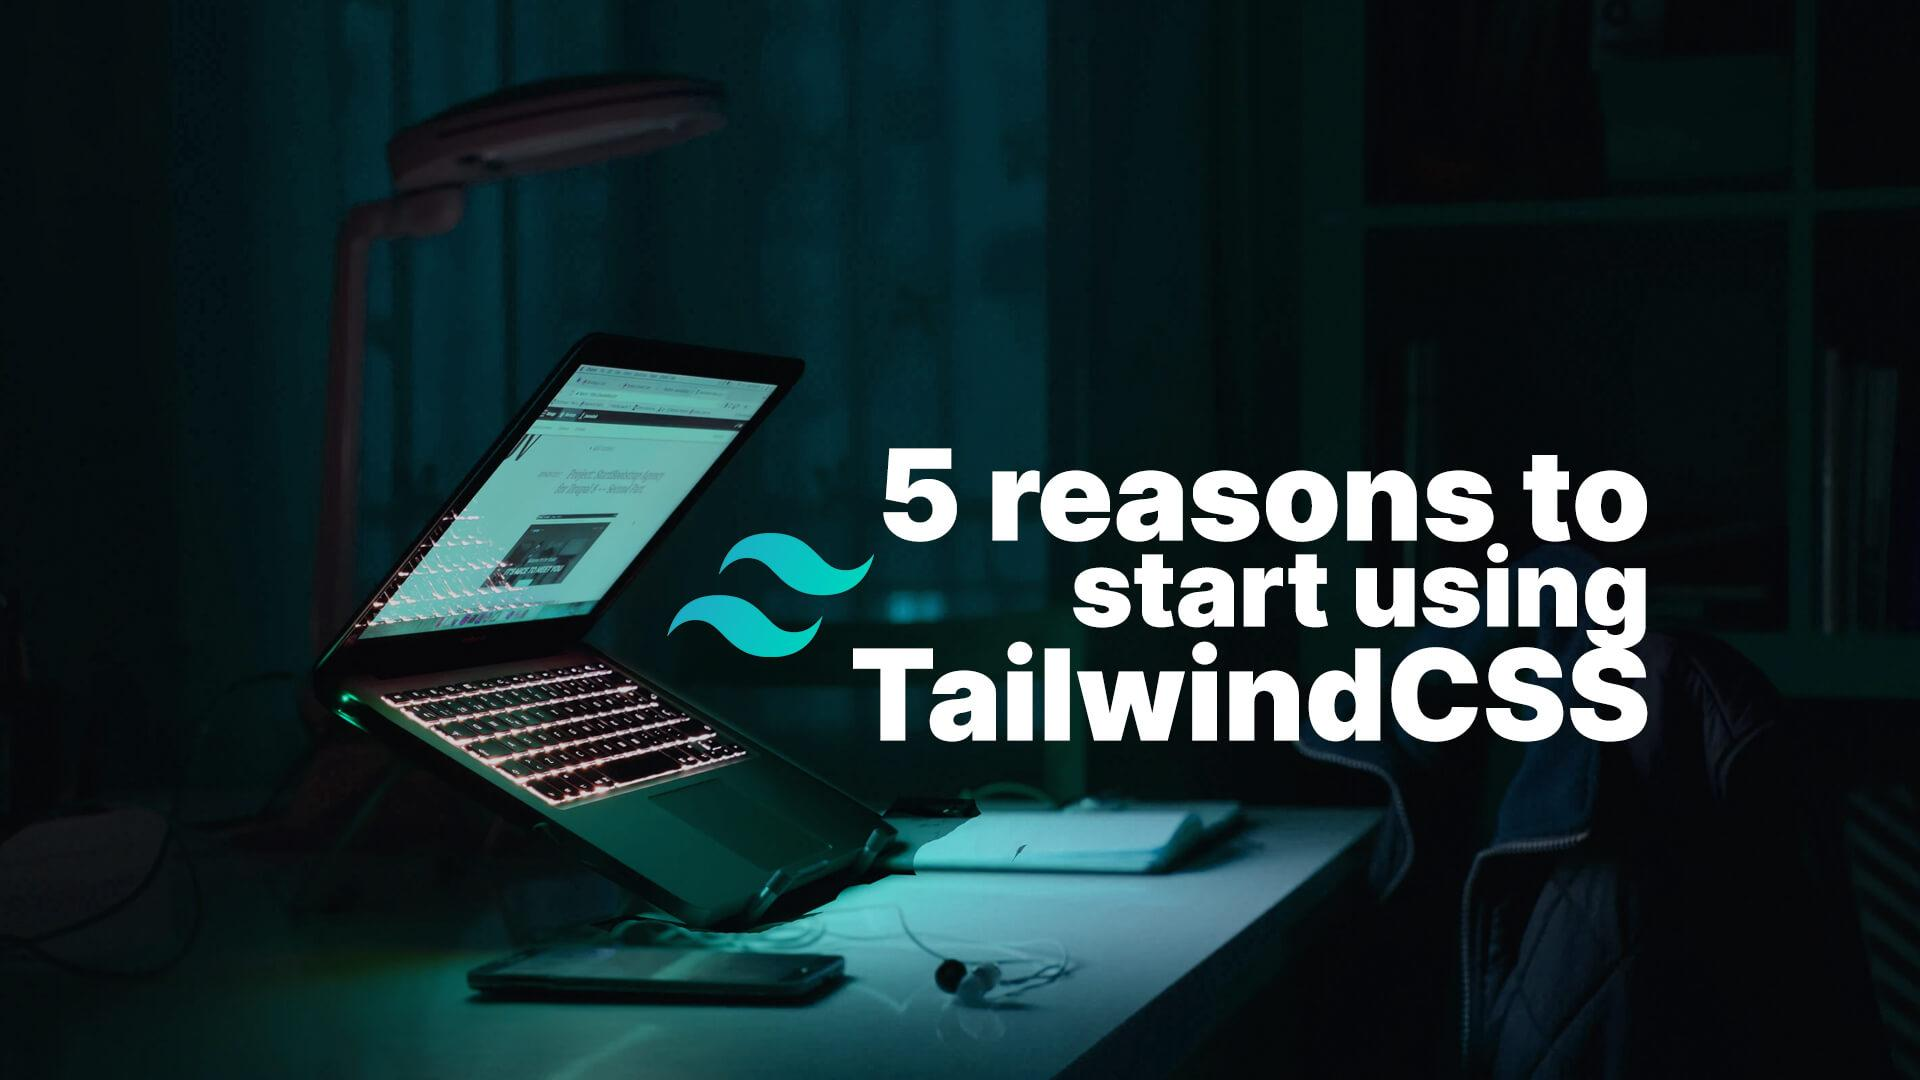 5 reasons to start using TailwindCSS